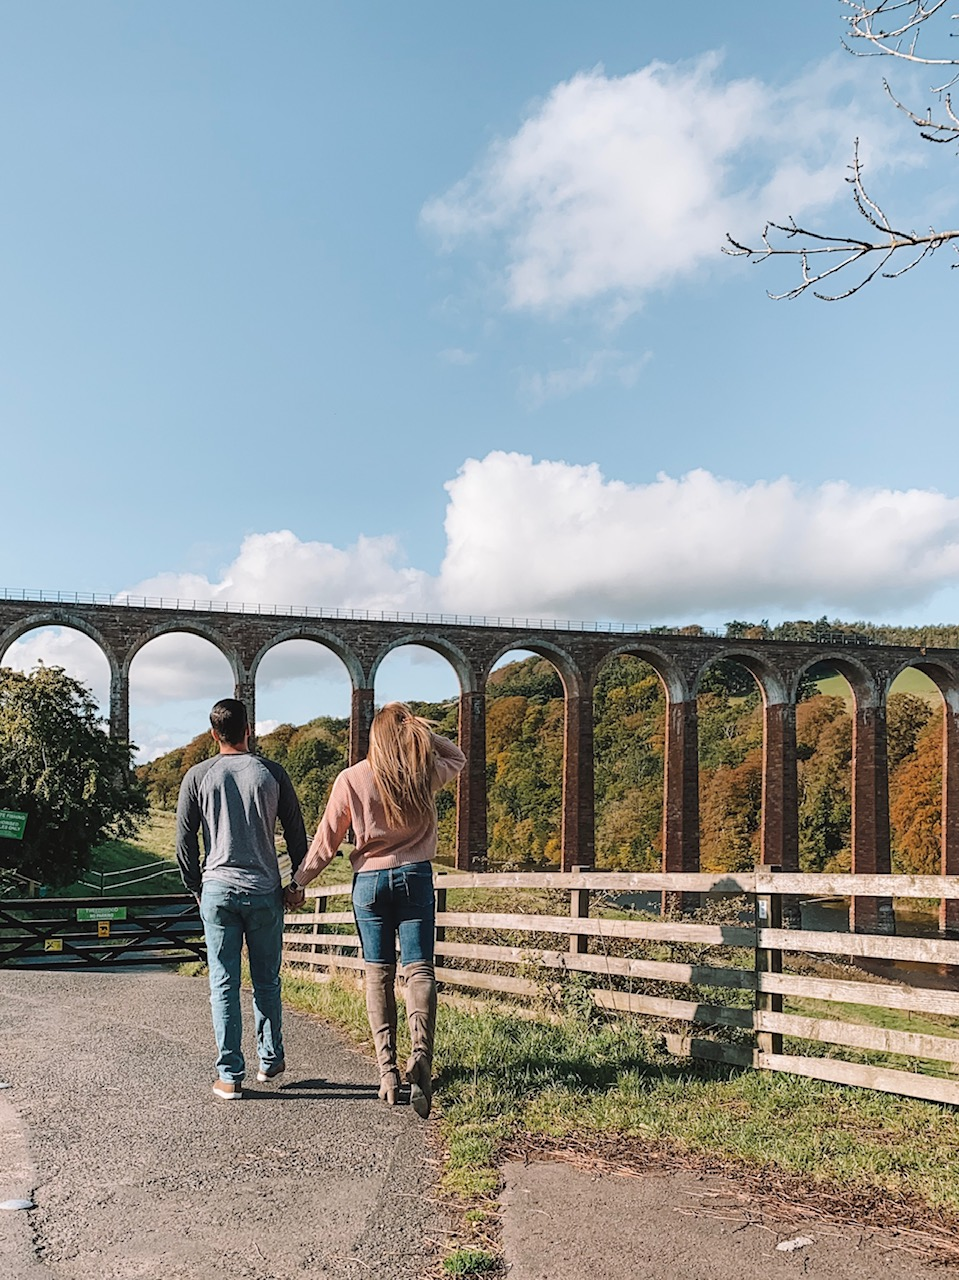 travel blogger Amanda Martin stops at Leaderfoot Viaduct Bridge while road tripping through Scotland